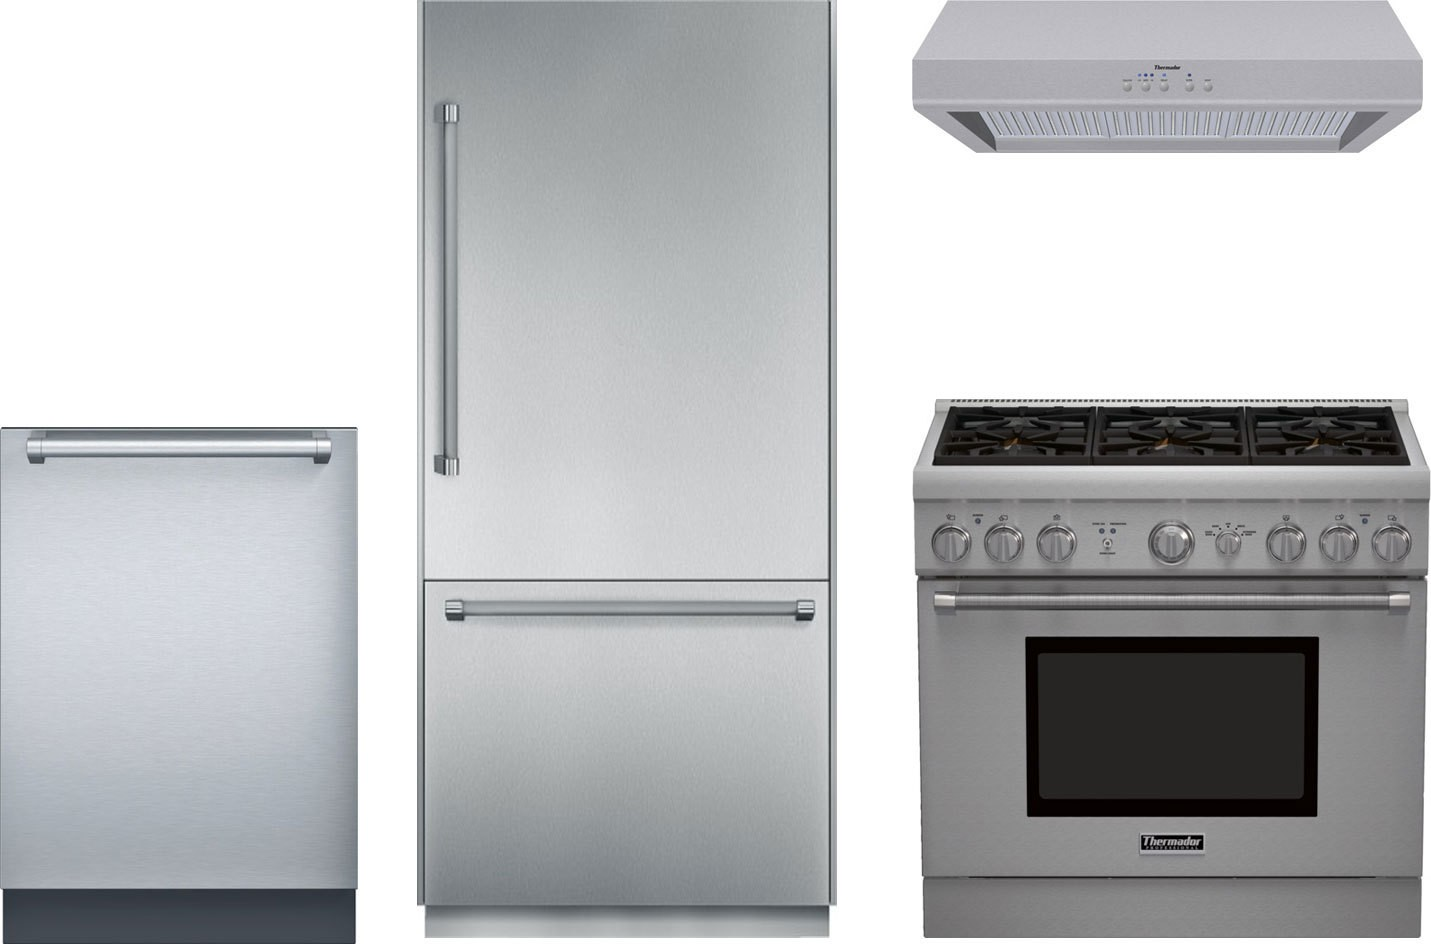 293226625710391214 together with 40 Kitchen Vent Range Hood Design Ideas in addition Frigidaire Professional Fpru19f8rf also Watch likewise Range hood vents. on thermador range